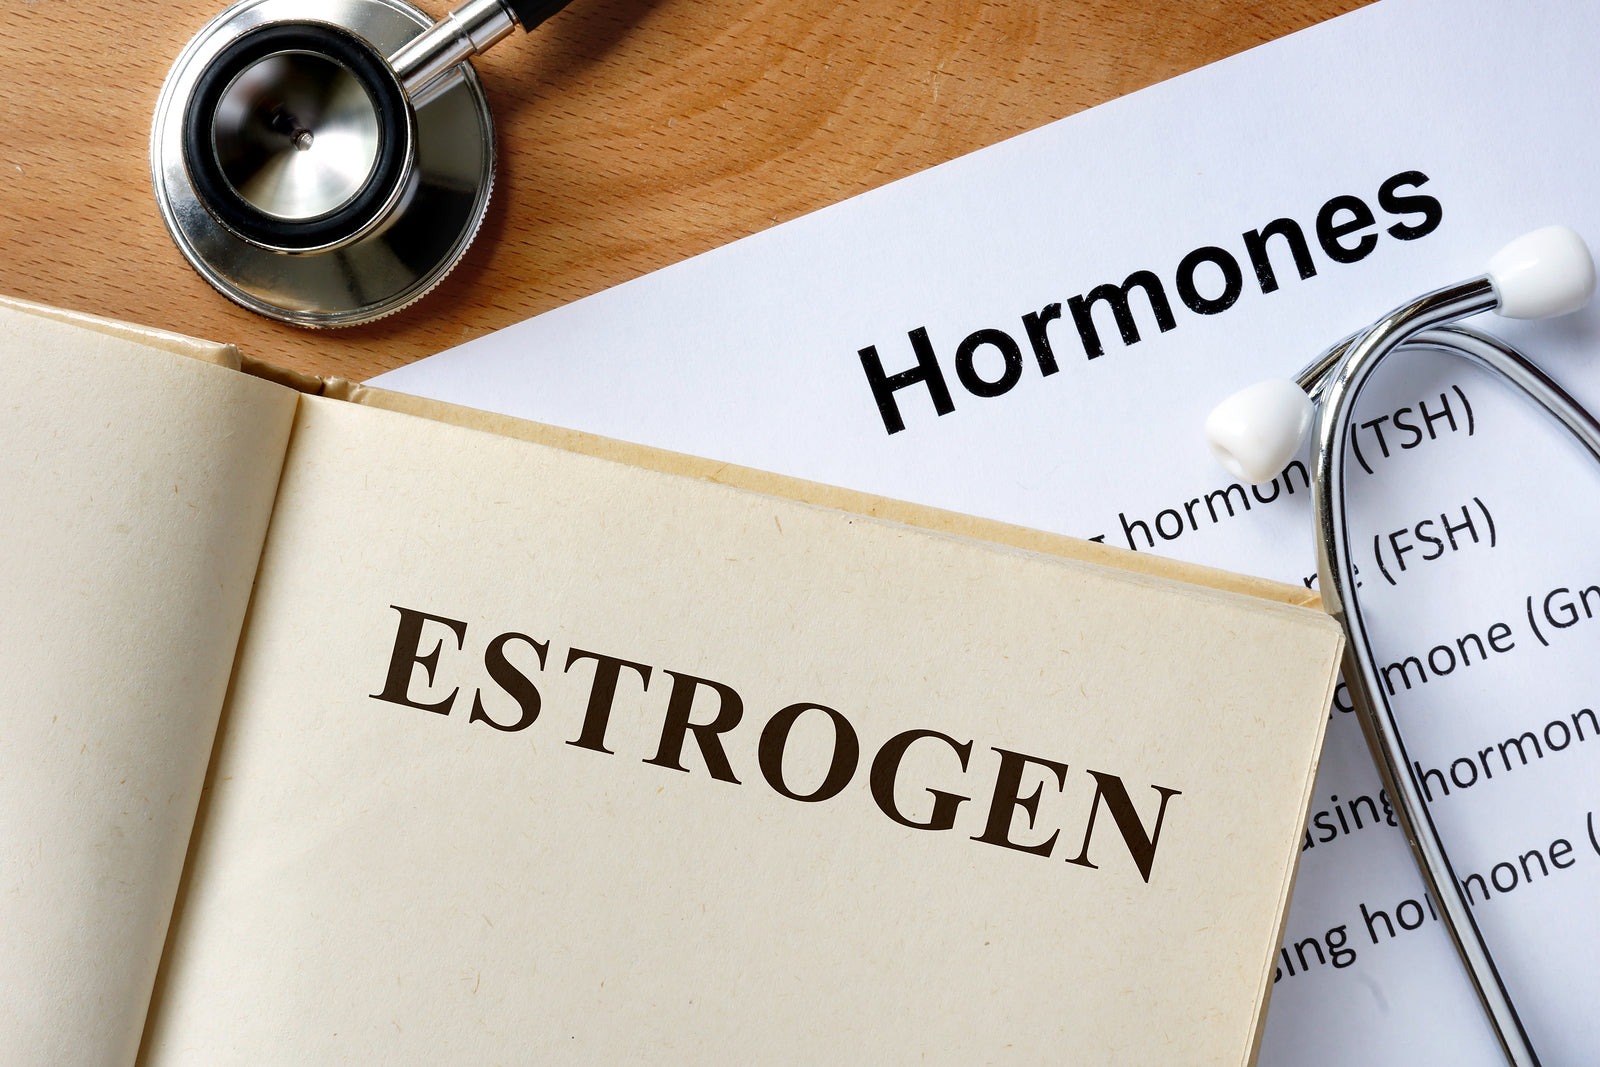 How to Identify and Detoxify Harmful Estrogens